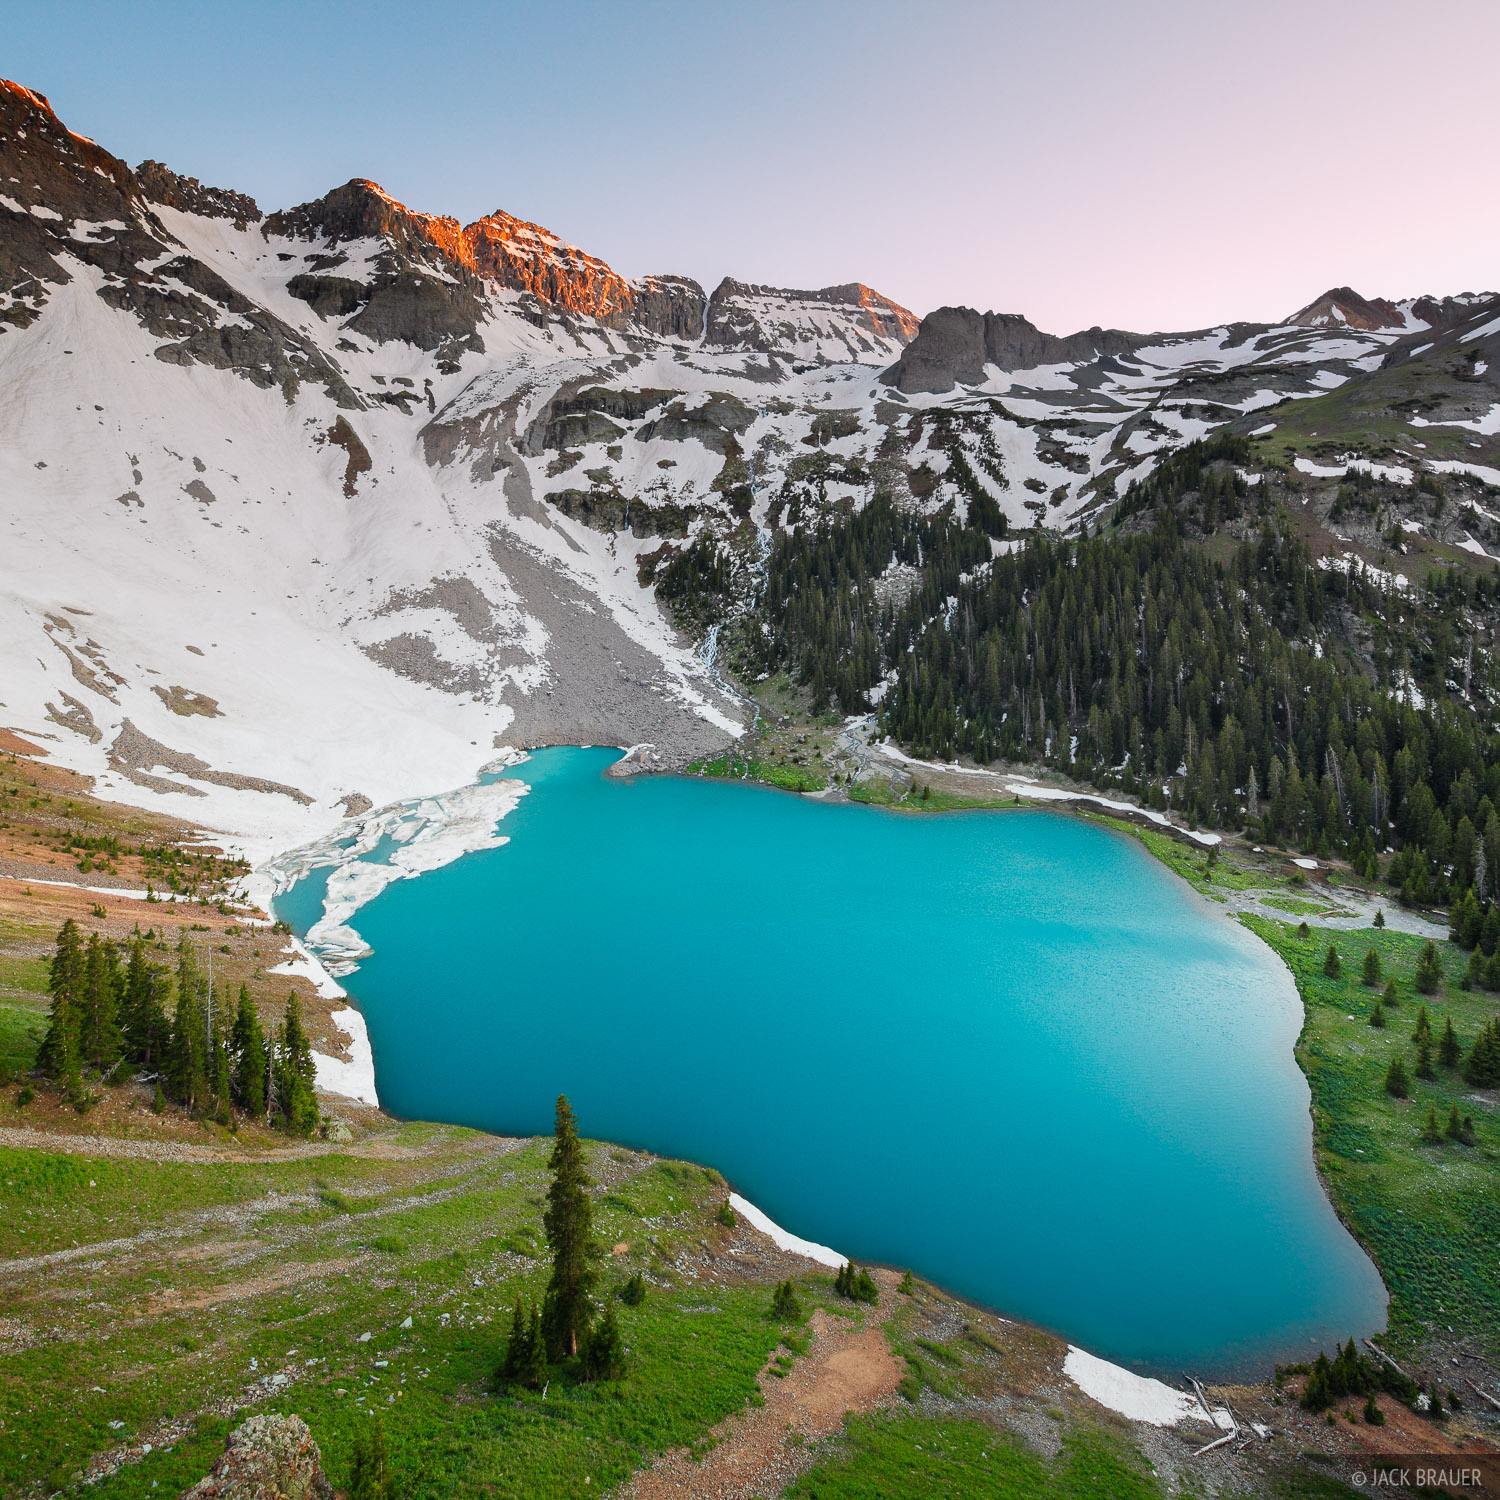 Blue Lake, Sneffels Range, San Juan Mountains, Colorado, photo